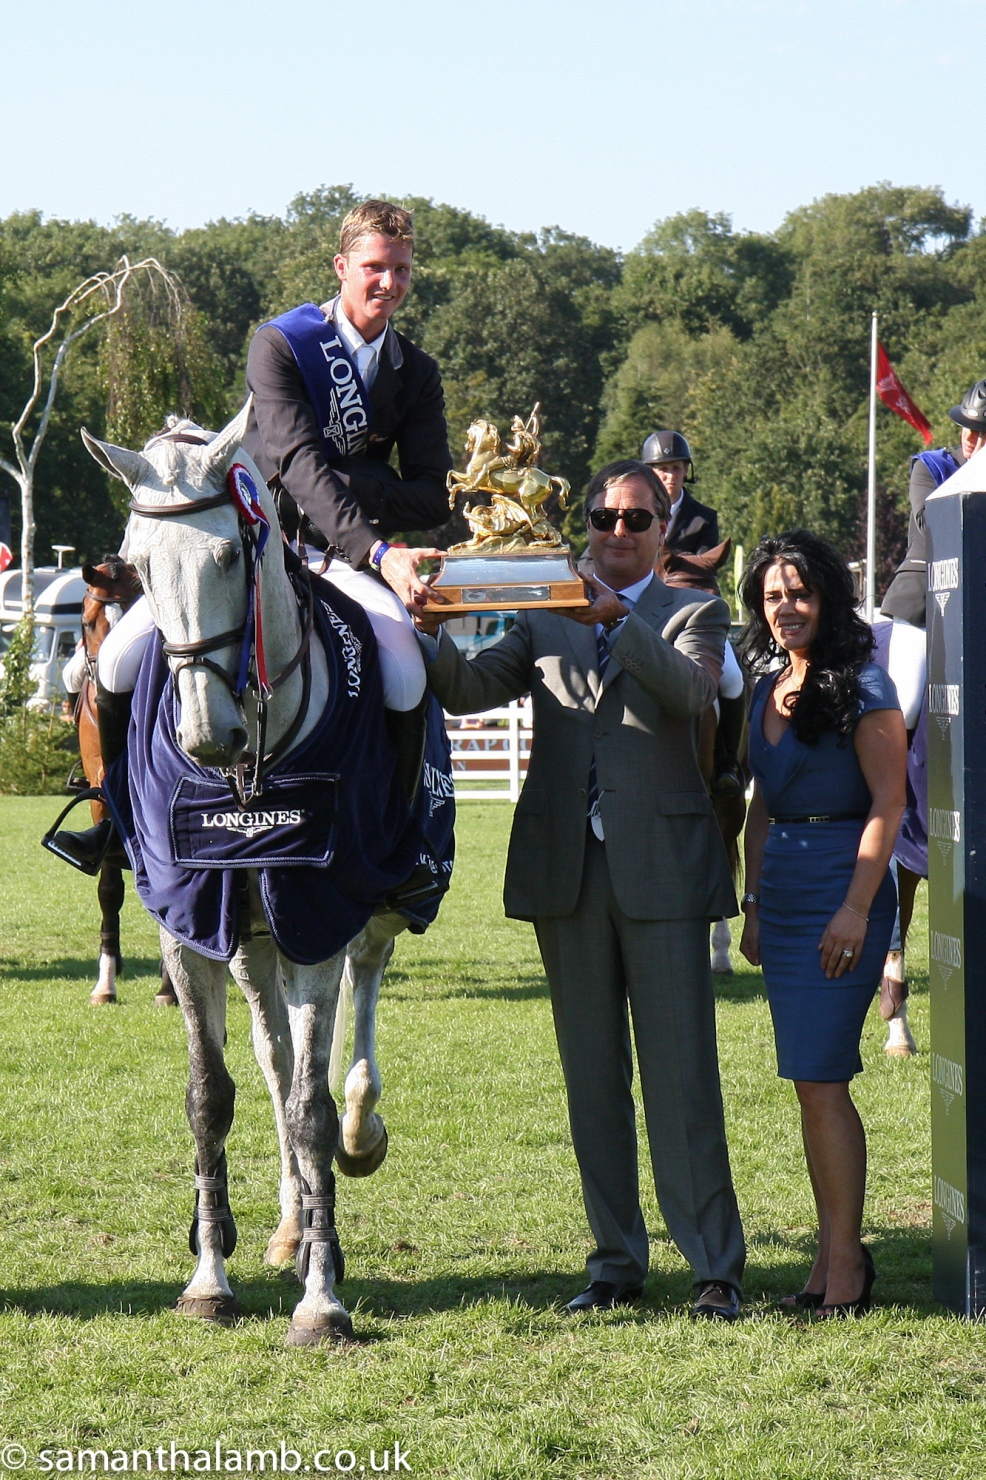 Horse Times Egypt: Equestrian Magazine :News :HOLLAND'S HENRICK-JAN SCHUTTERT WINS THE LONGINES KING GEORGE V GOLD CUP